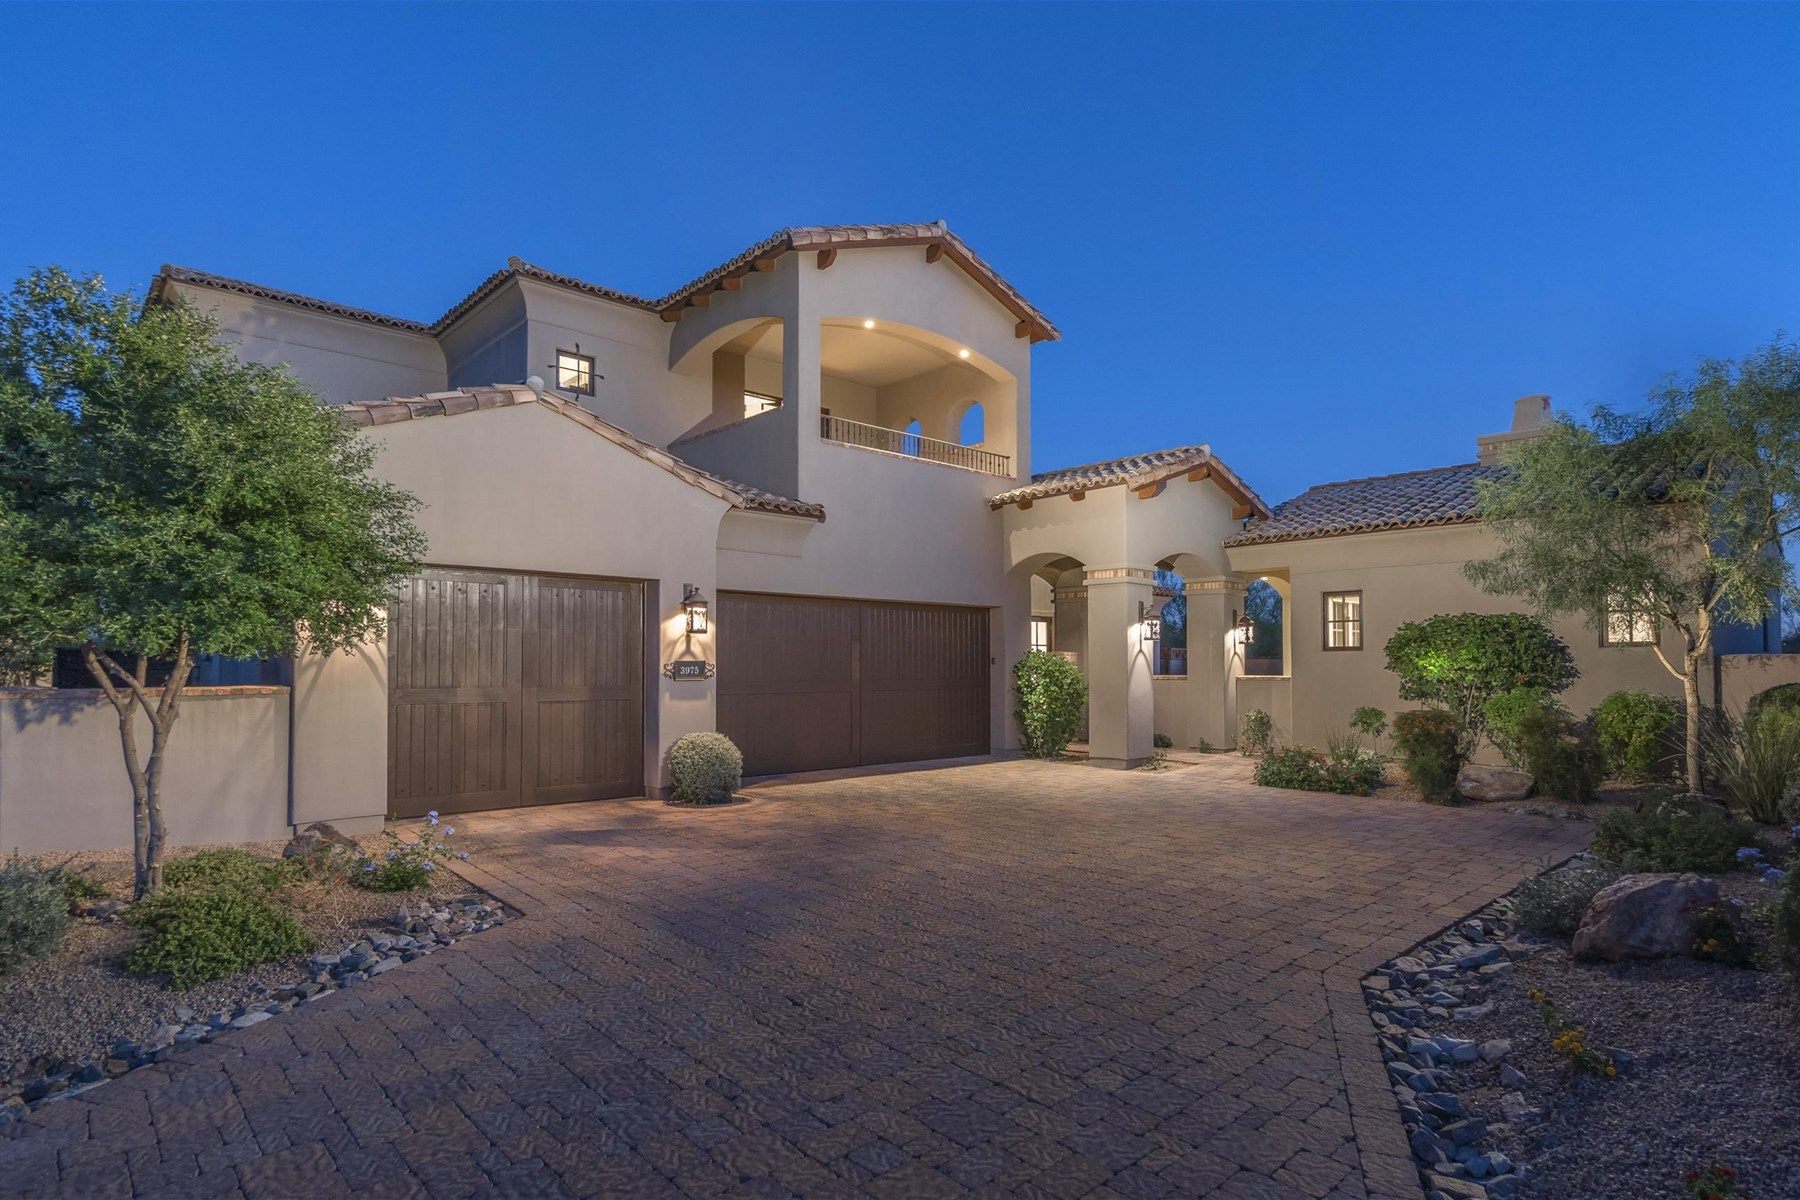 Single Family Home for Sale at Fabulous home features stunning mountain views 3975 E Sierra Vista Dr Paradise Valley, Arizona, 85253 United States